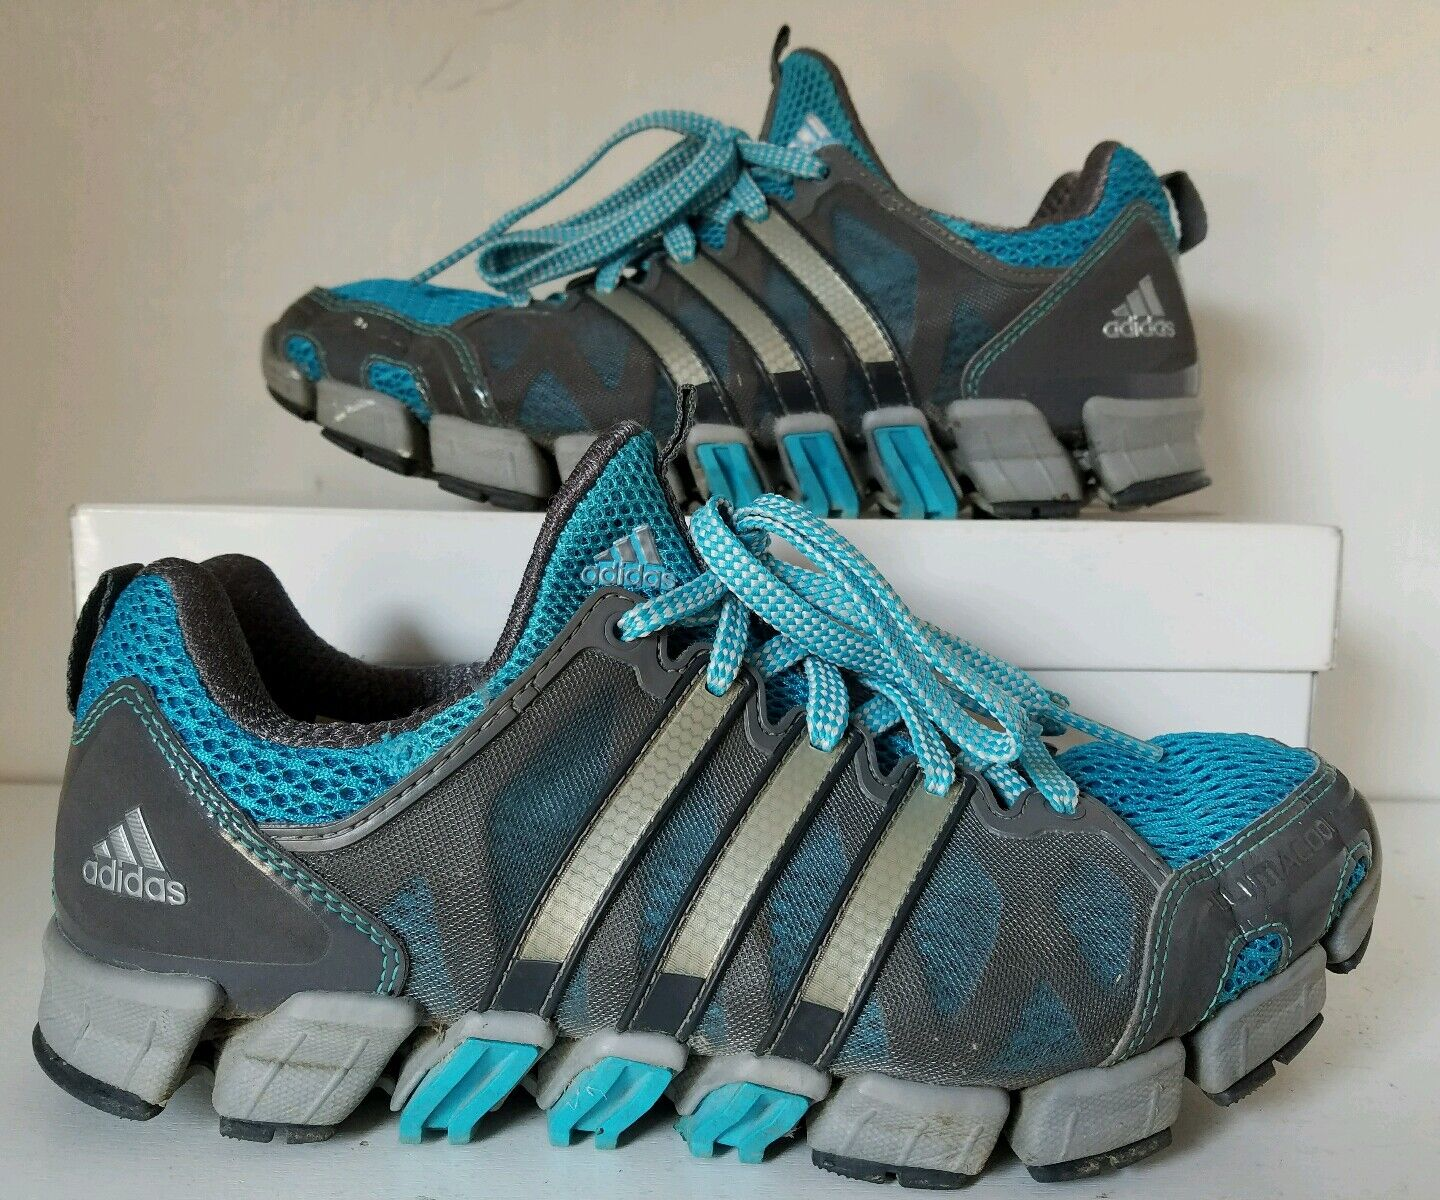 ADIDAS CLIMACOOL RIDE TR W RUNNING SHOES G47126 bluee Size 6.5